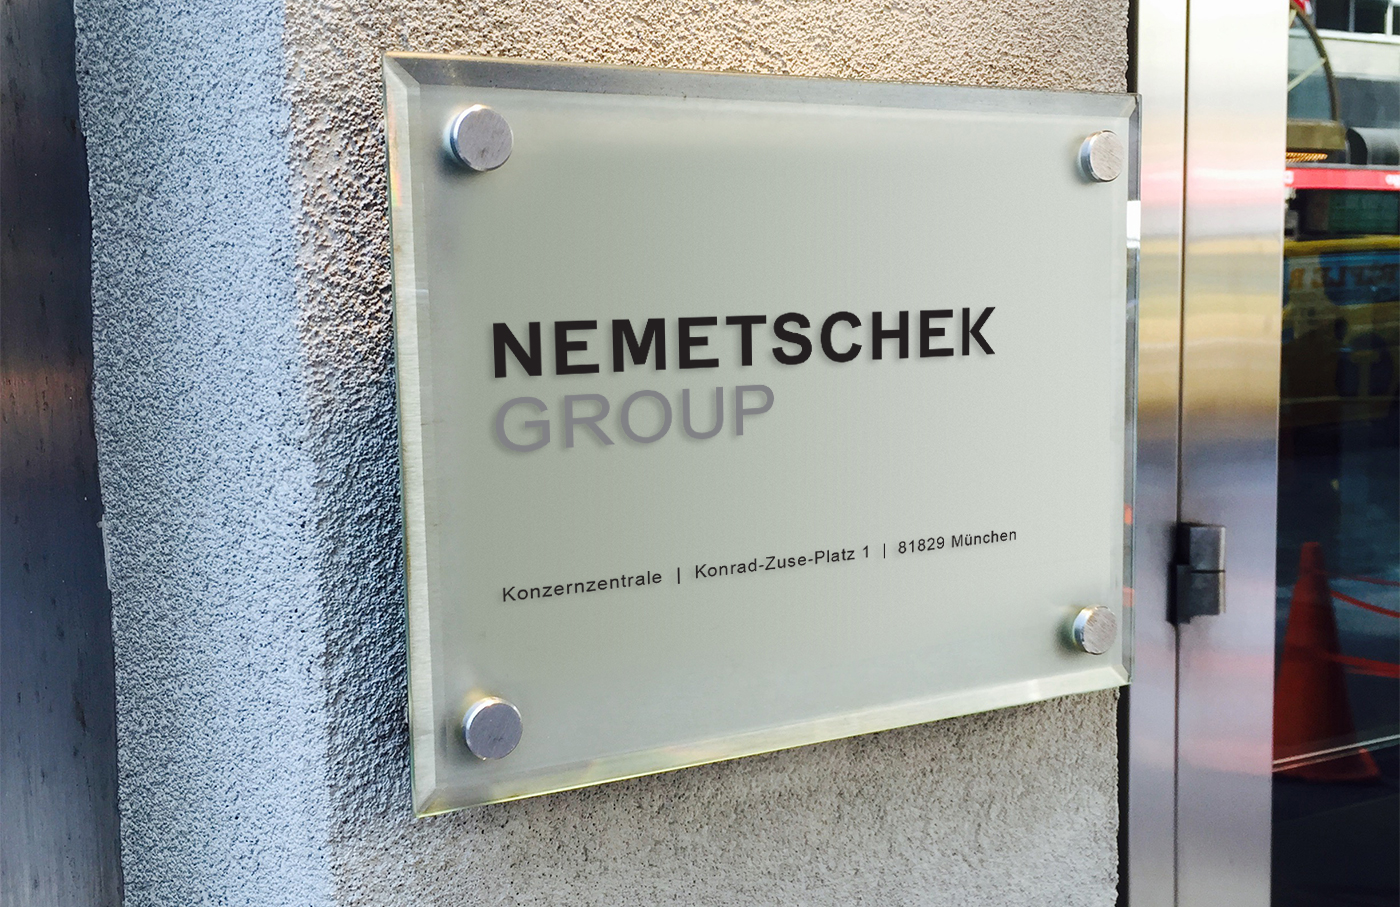 Nemetschek Group signage